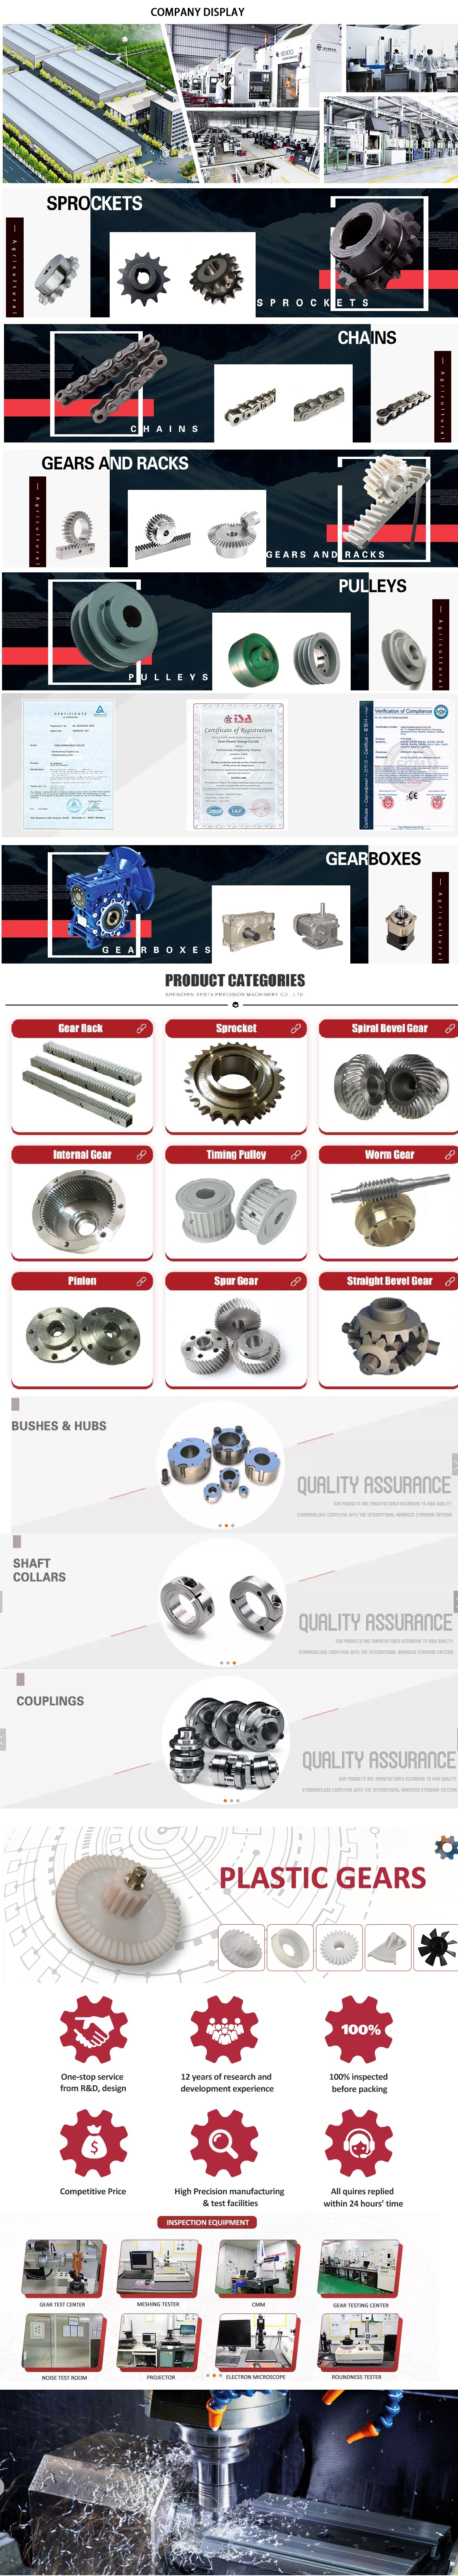 Best  made in China - replacement parts - agricultural gearbox manufacturer in China Bearing   john deere mx5 gearbox   Taizhong China, Taiwan Province of China   for scooter, machine, motorcycle, engine 6001 6002 with ce certificate top quality low price suitable for Tractor, Agricultural machines, right angle pto shaft drive